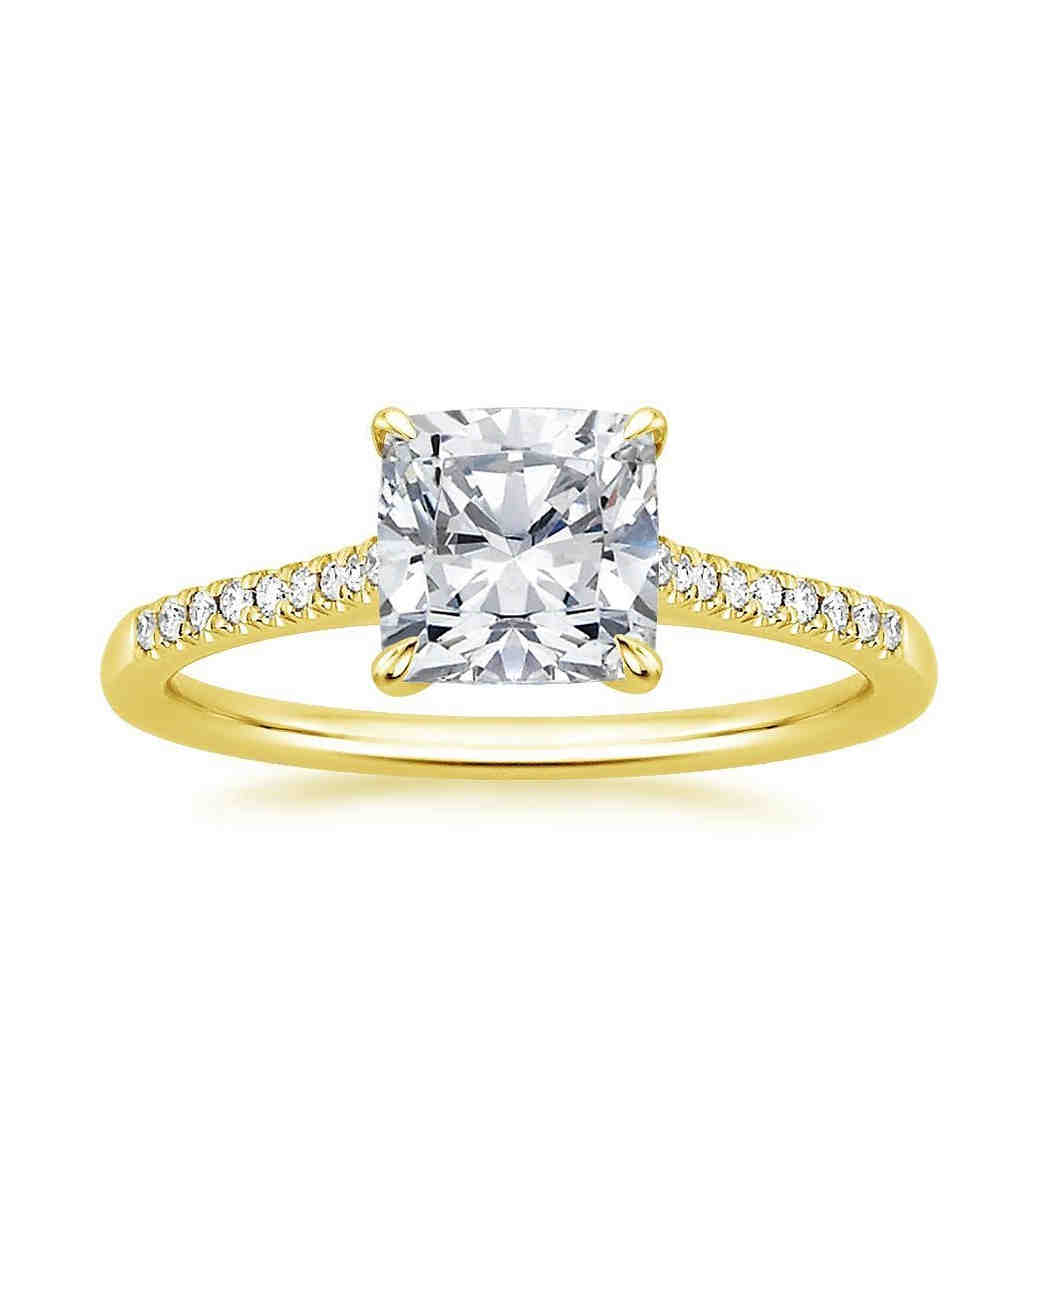 Brilliant Earth Yellow Gold Square-Cut Diamond Engagement Ring